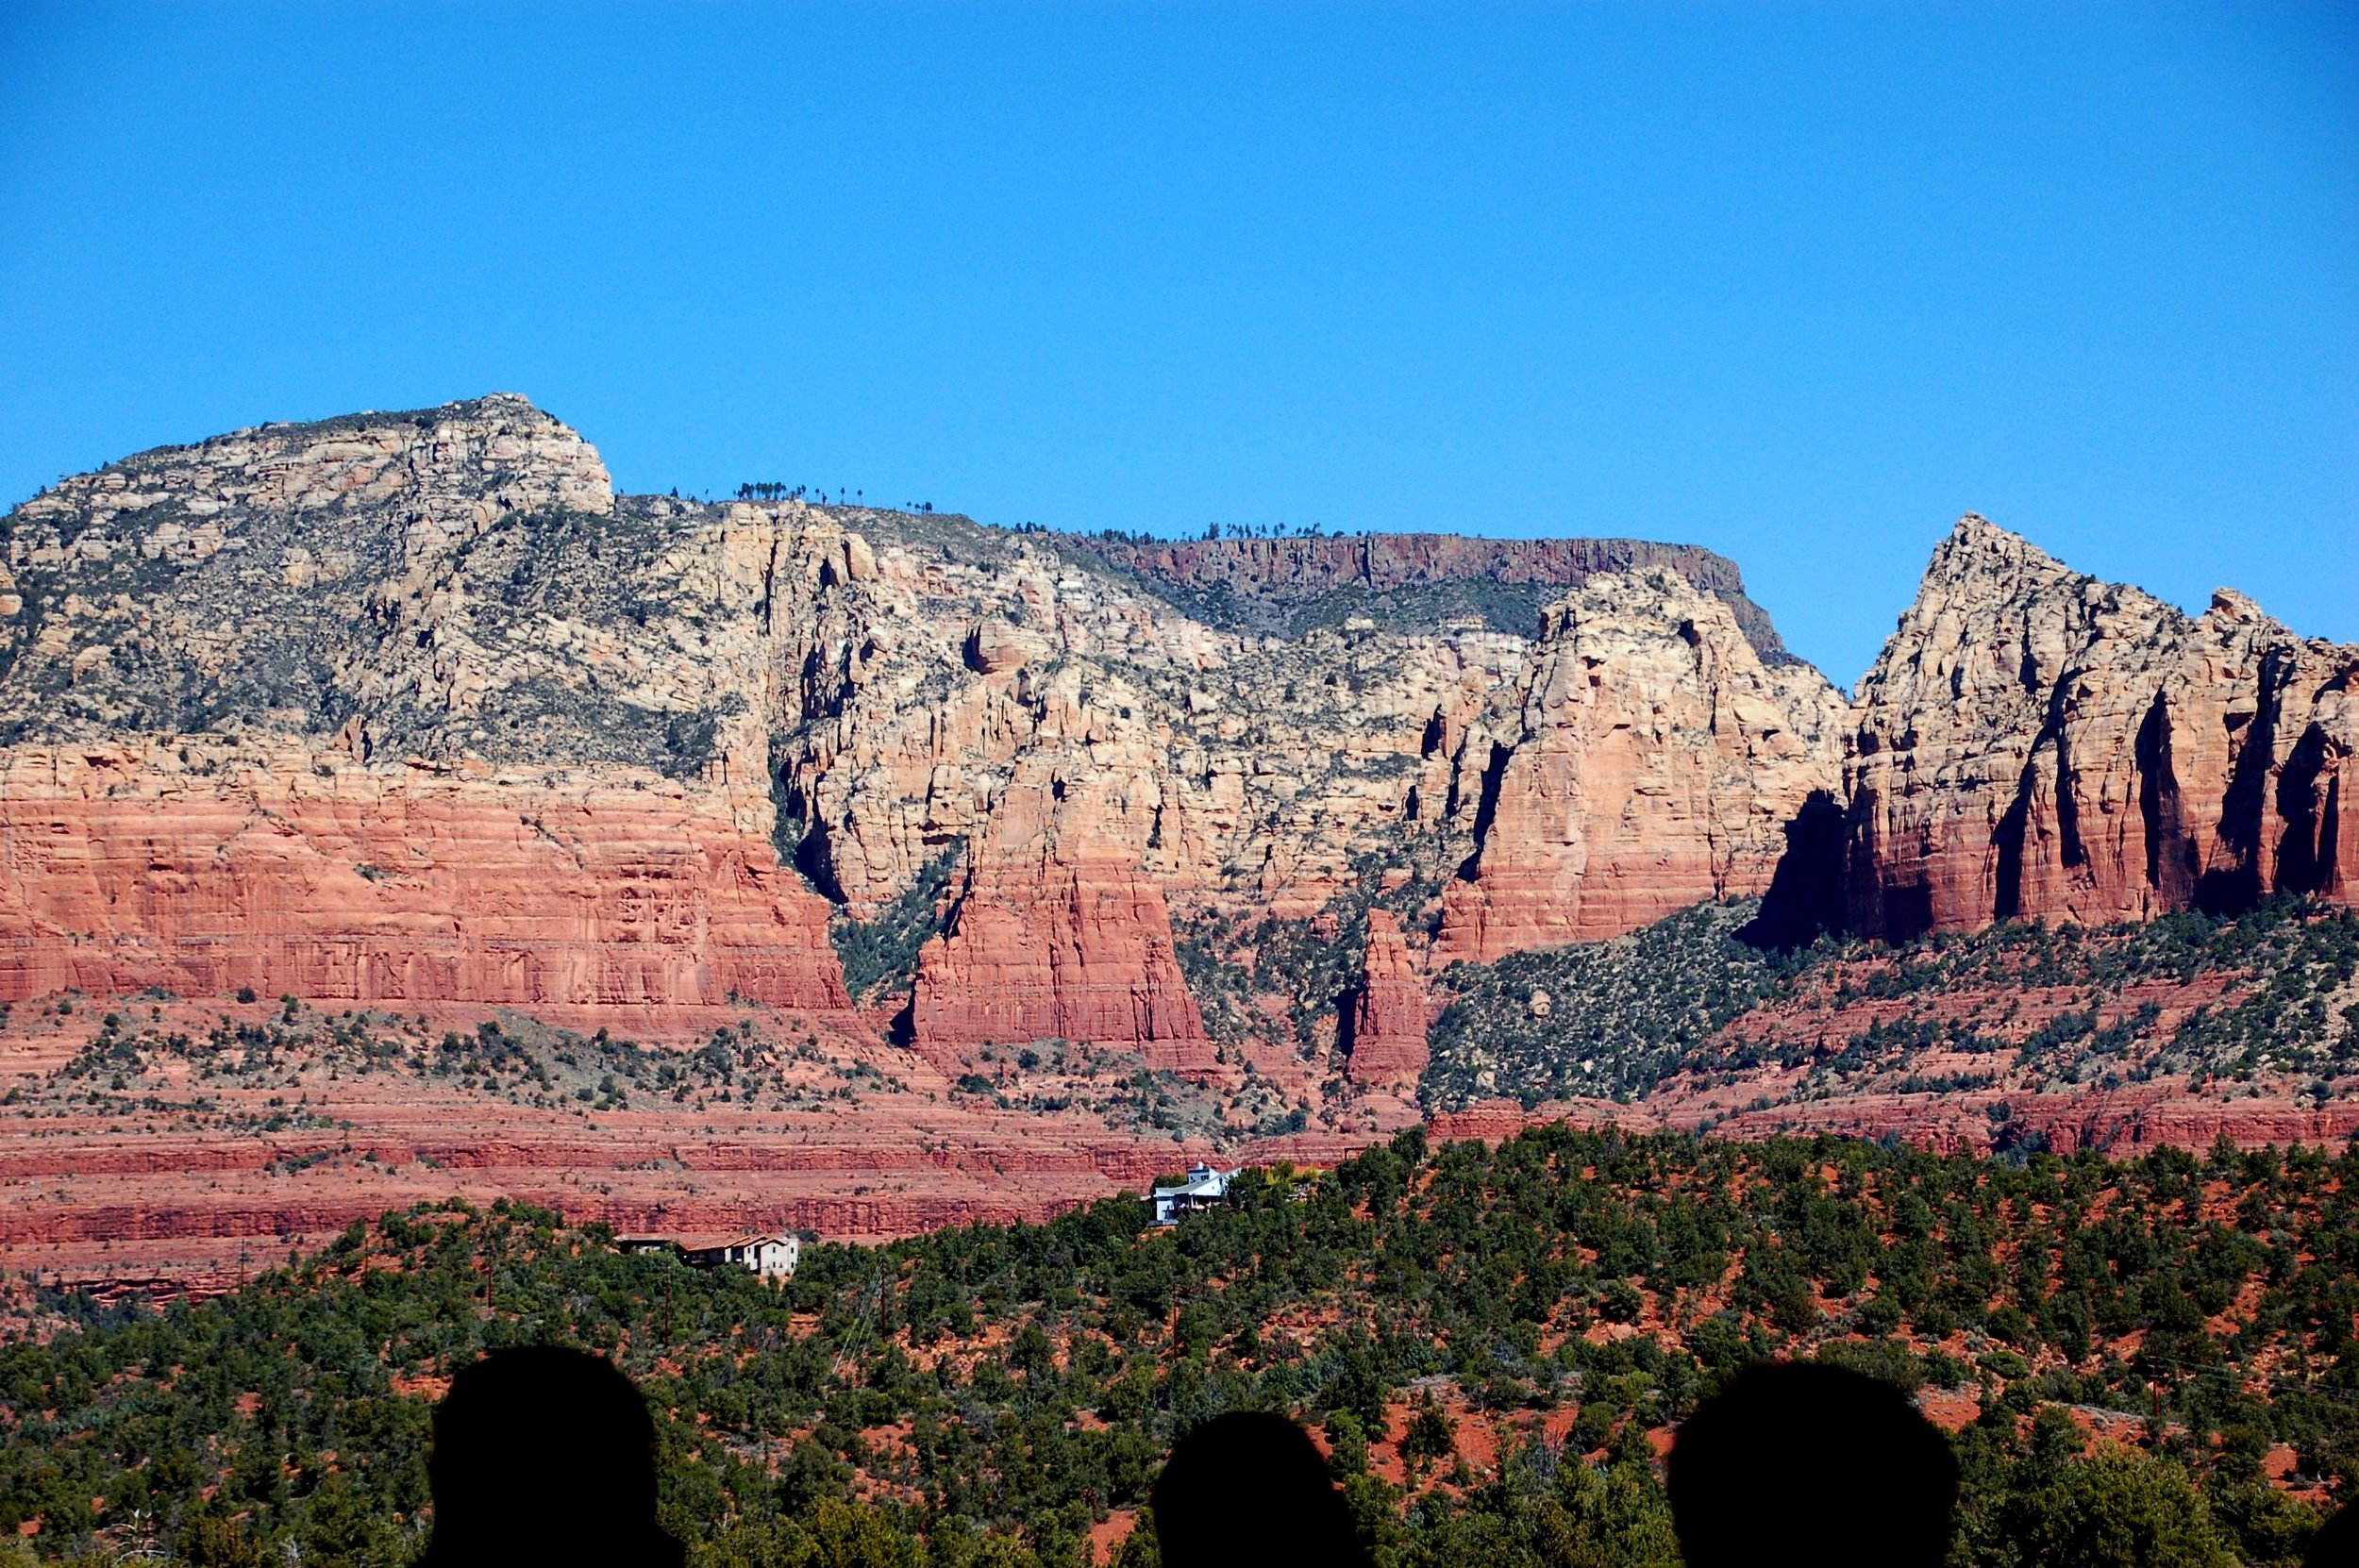 This was the view from Mariposa Latin Grill in Sedona